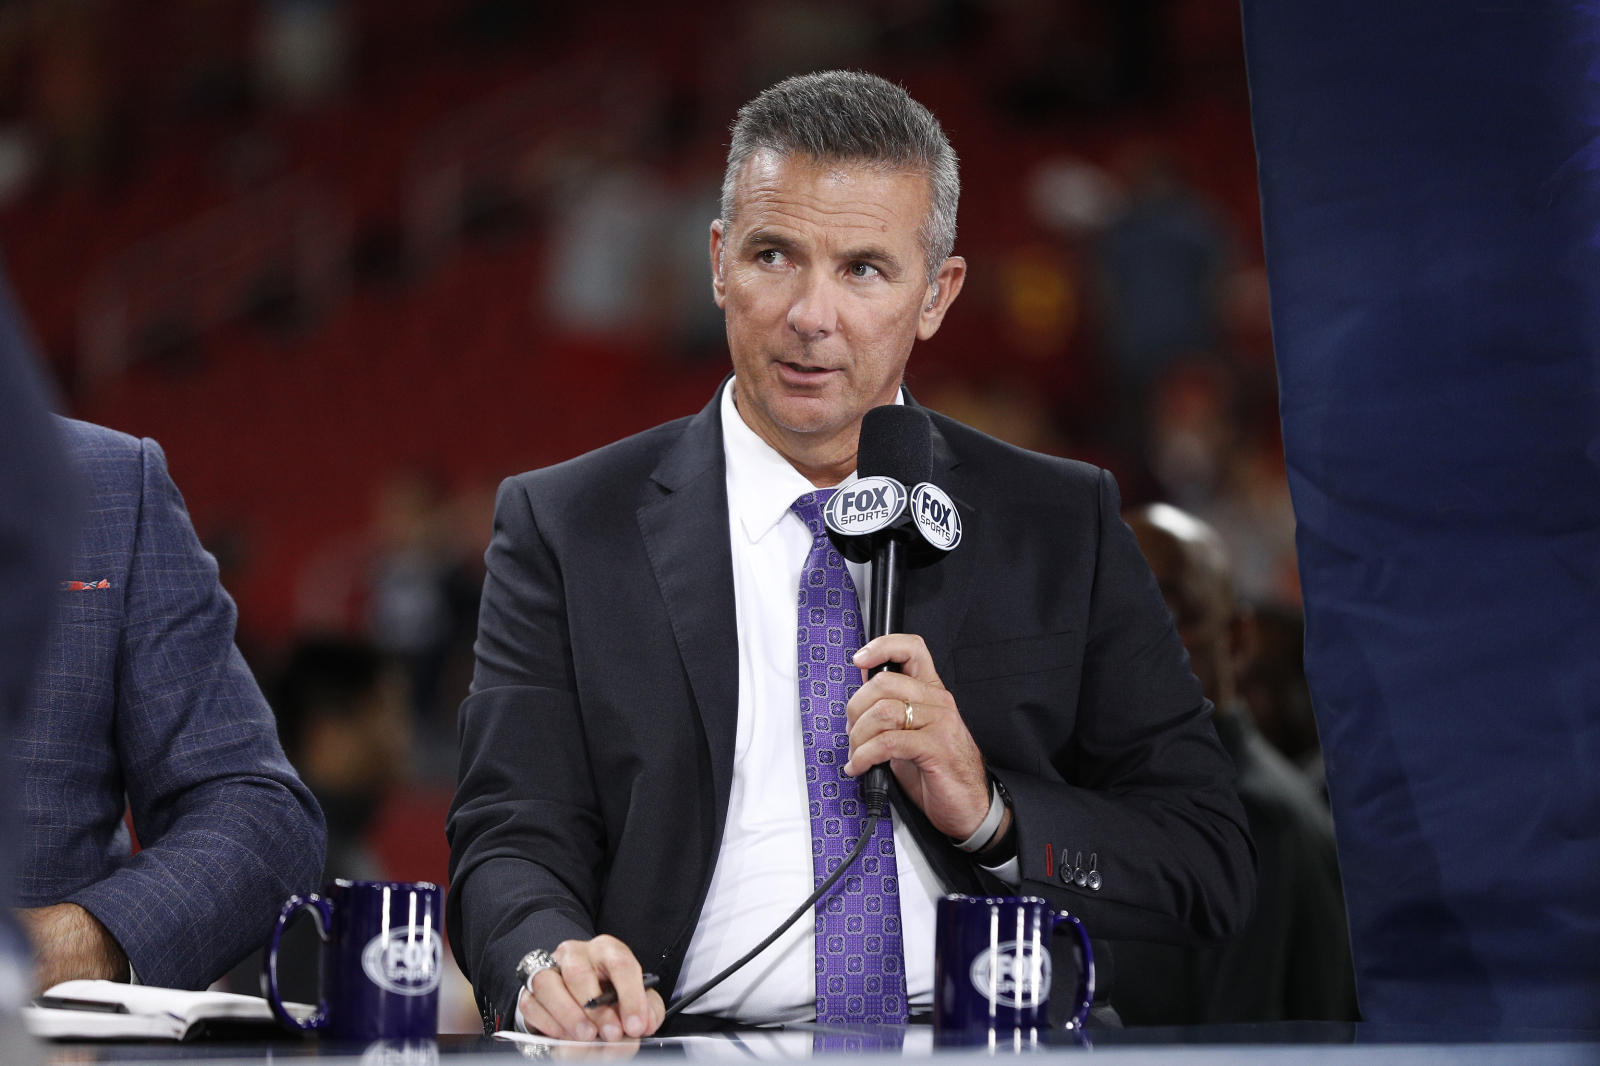 Urban Meyer had a lot of success with the Ohio State Buckeyes. However, he just said something that should terrify Ohio State fans.